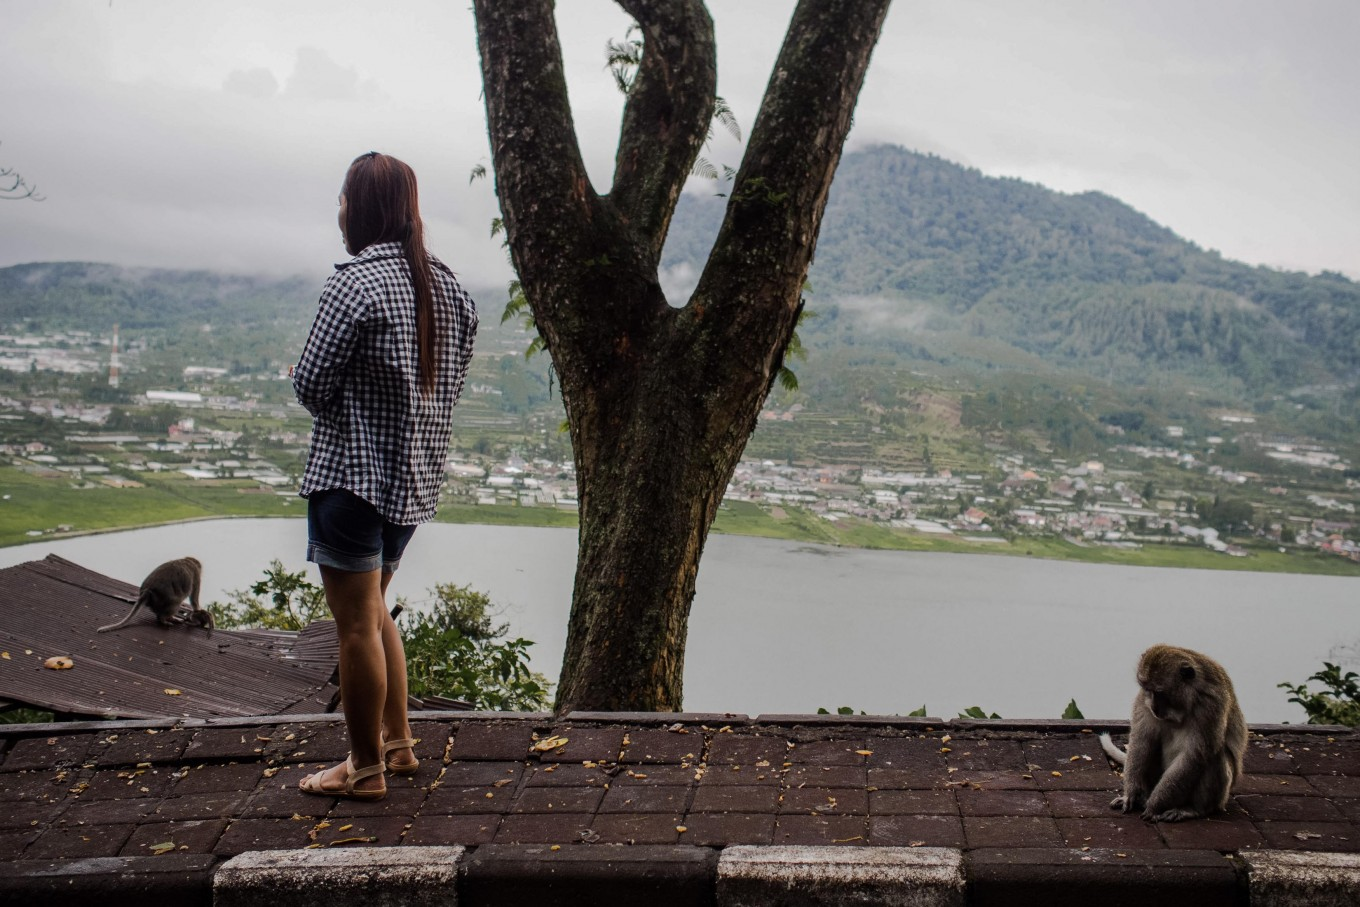 Gazing upon the horizon: A woman enjoys the view with a monkey sitting behind her in Wanagiri village in Tabanan, Bali. JP/ Anggara Mahendra